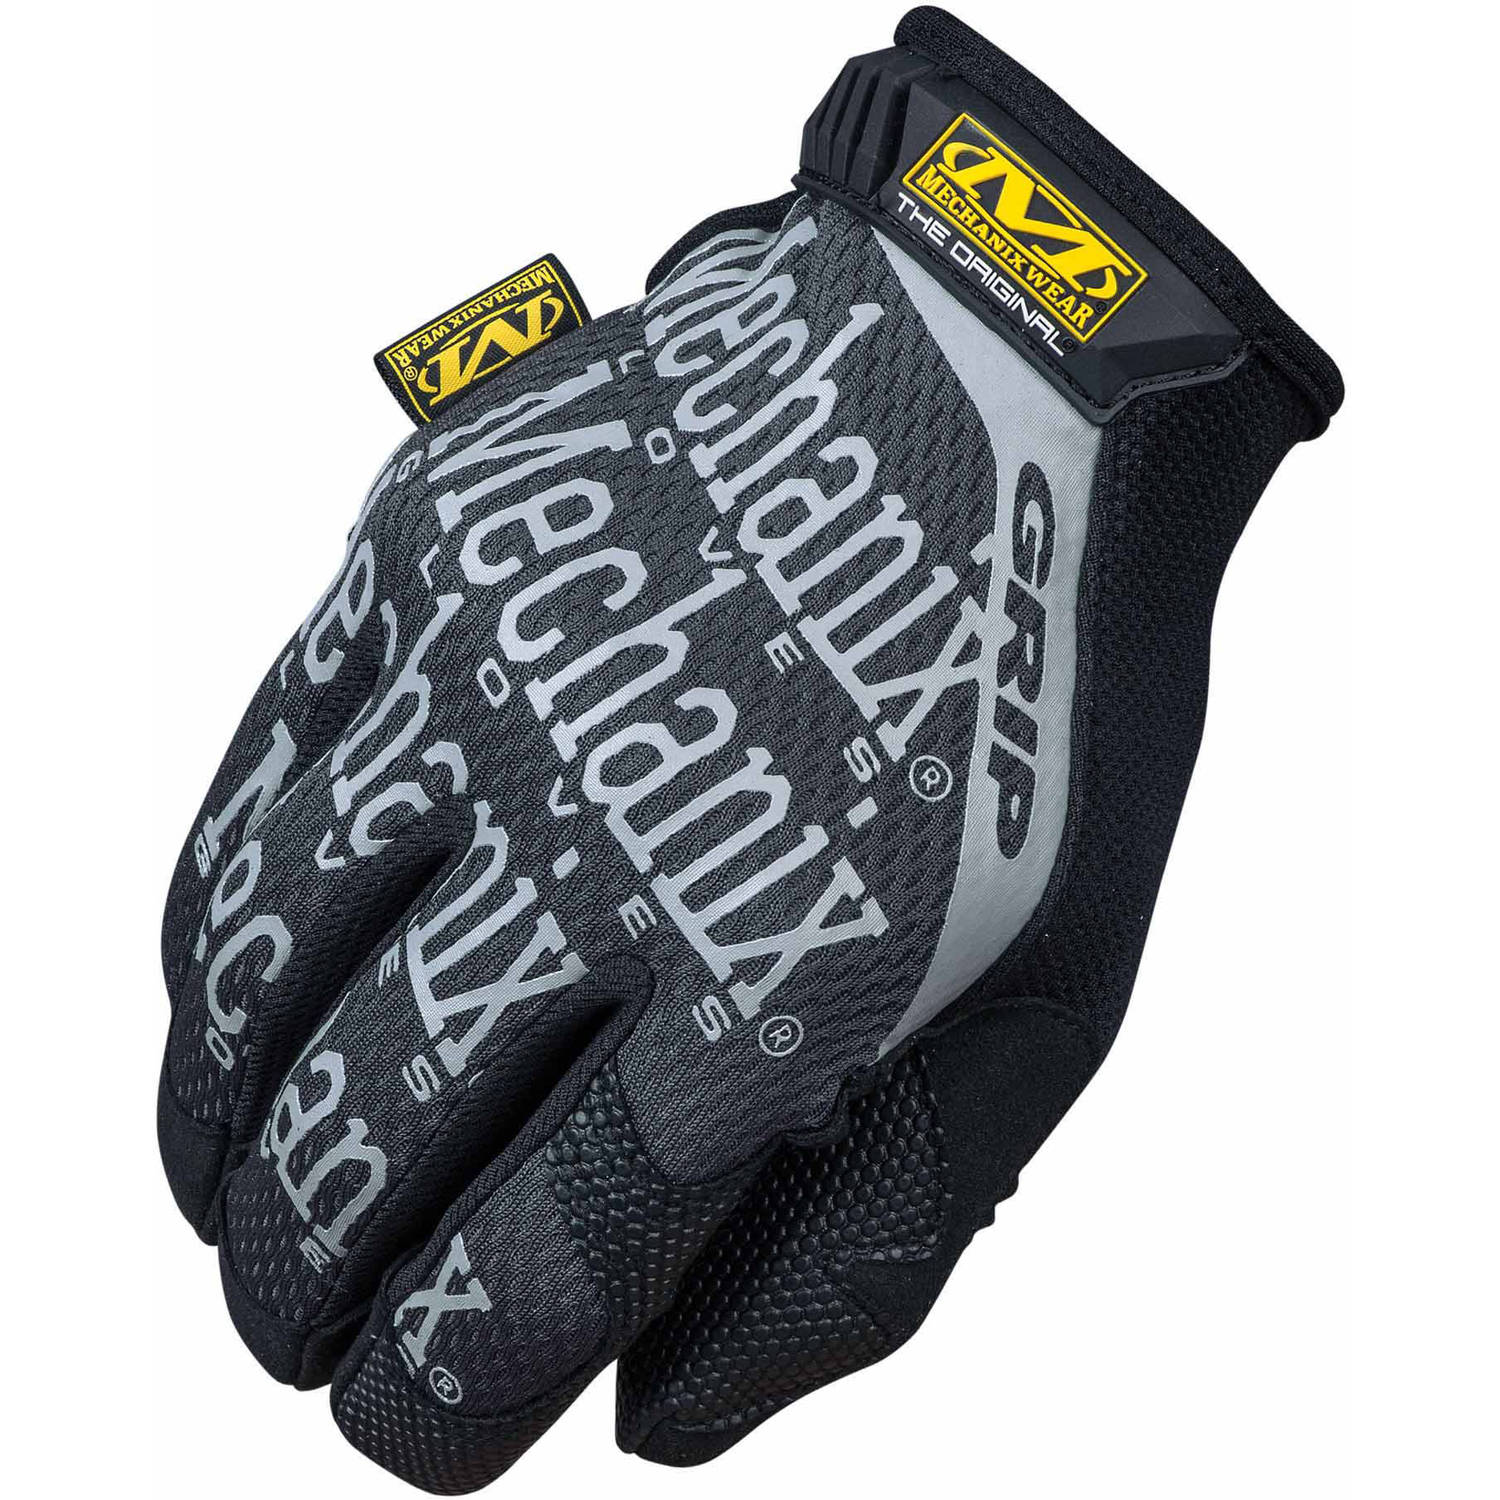 Mechanix Wear Original Grip Glove, Black, Small